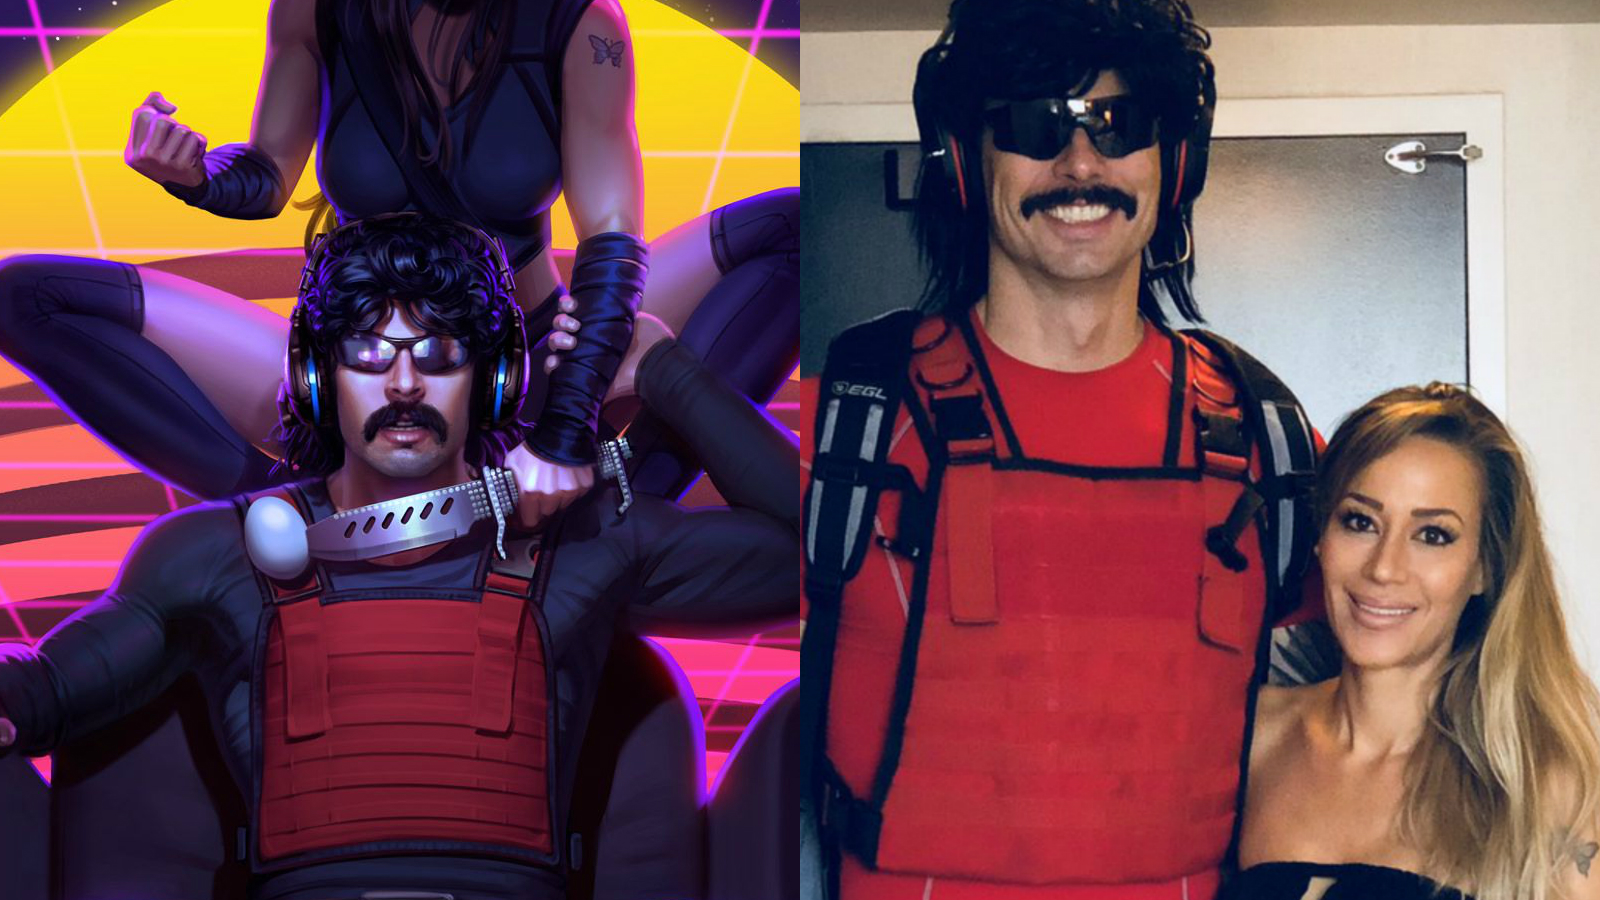 Dr Disrespect and his wife